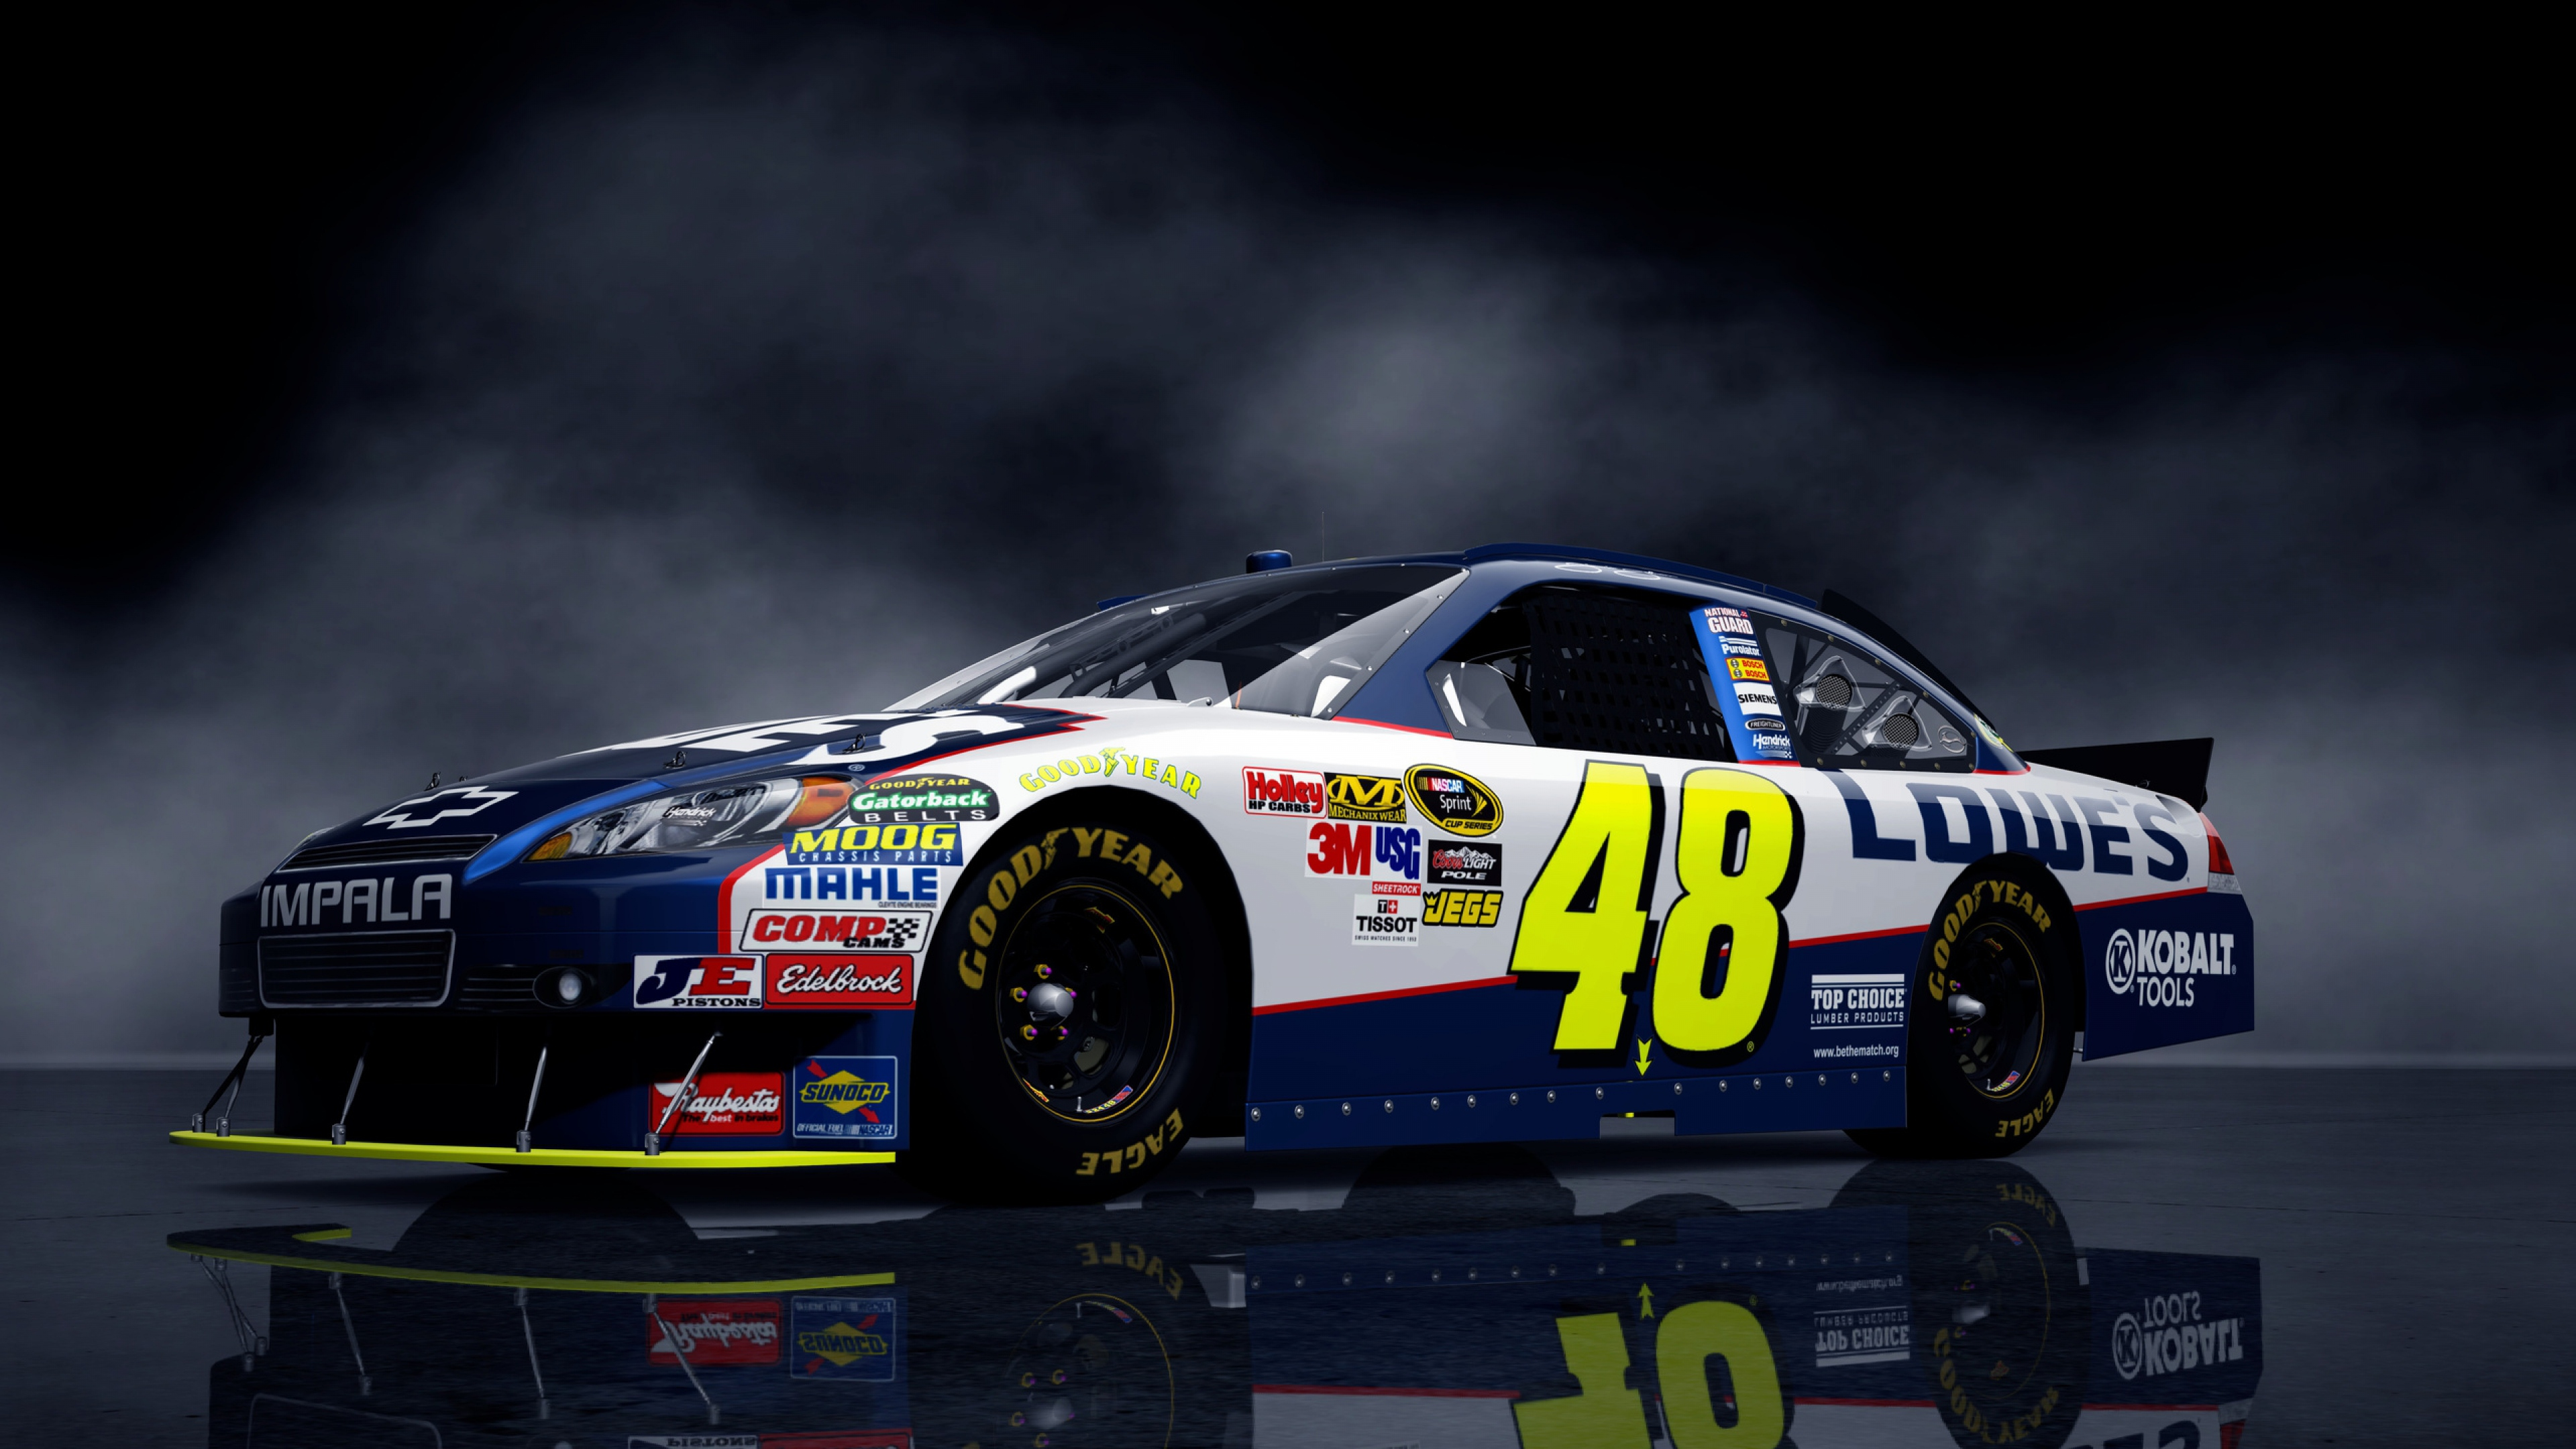 chevrolet_car_nascar_lights_background_81176_3840x2160